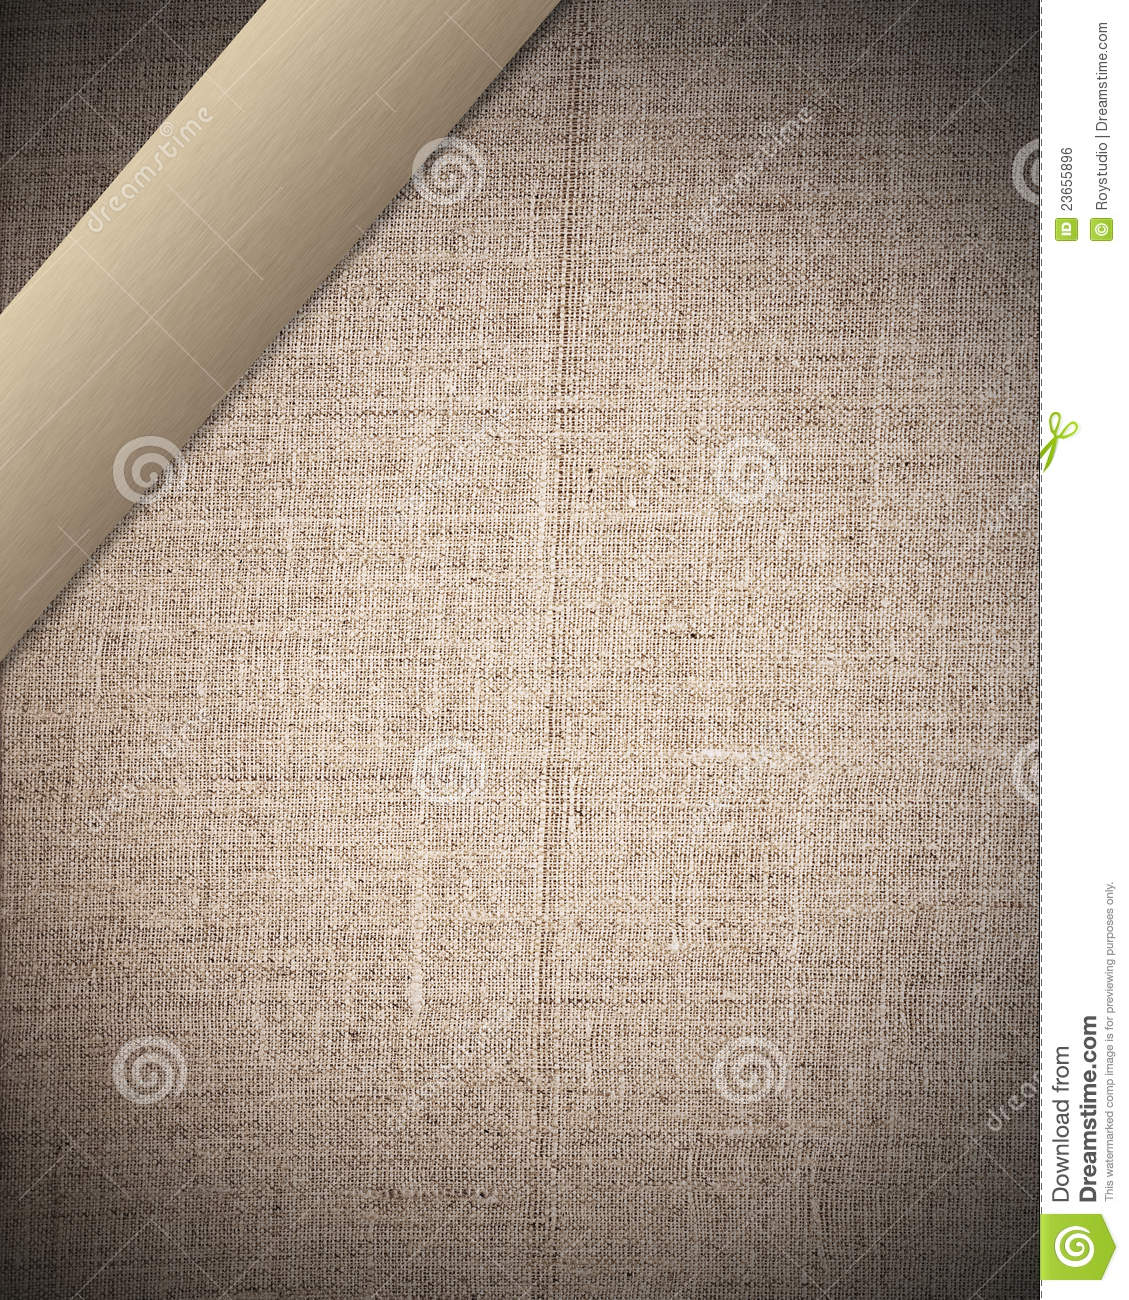 Beige canvas texture with bar